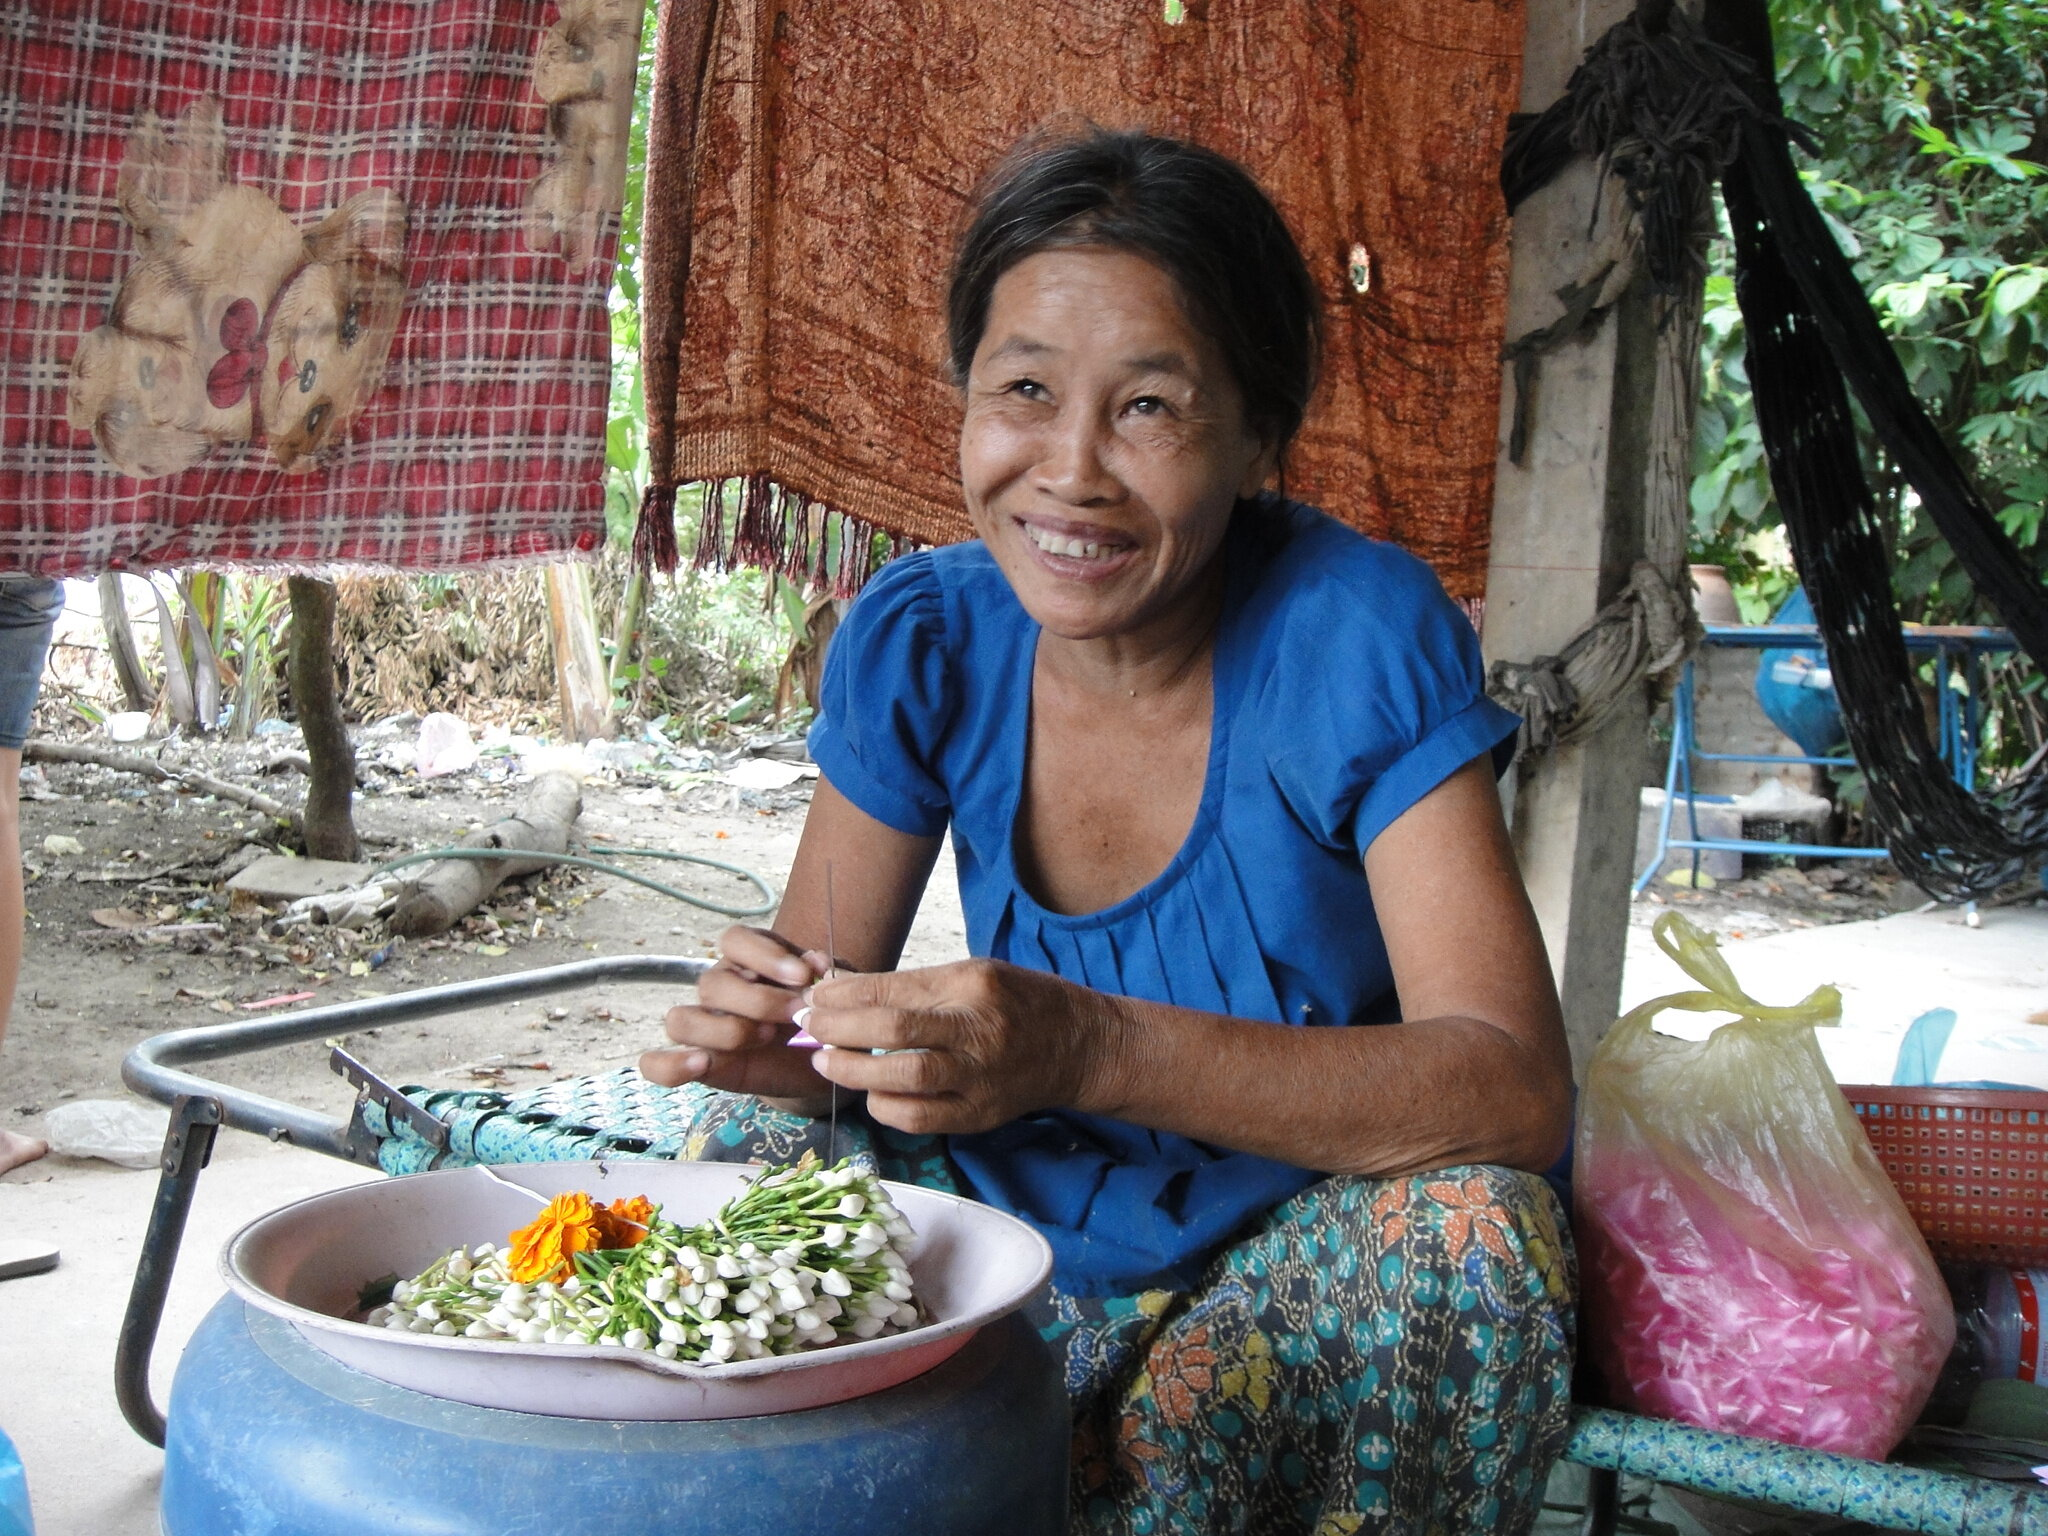 A stabilised woman with schizophrenia can now earn money from doingflowers guirlande for praying Buddha, June 2015.JPG